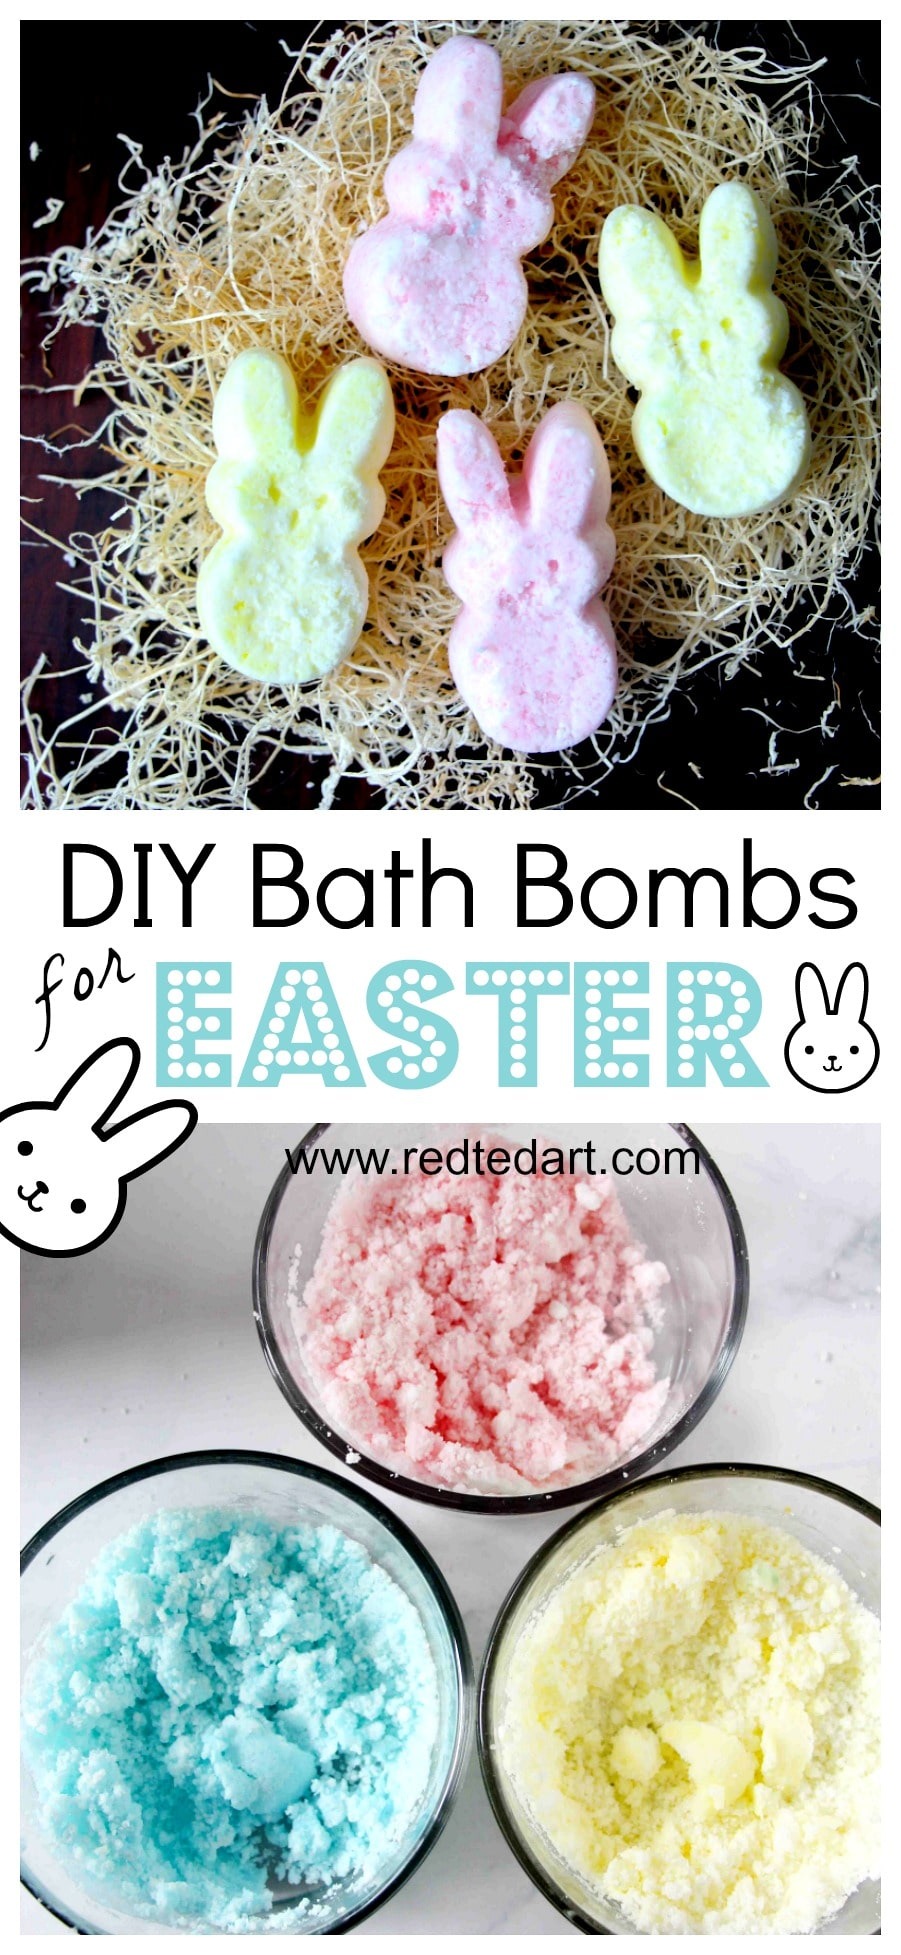 "Easter Bath Bomb Recipe - adorable Peeps Bath Bombs - a great Easter Bath Bomb Recipe to make with or for the kids. Love this as an alternative ""no Treat Easter Gift"" for big and small. Make them as Bunny Peeps or Chick Peeps or whatever Easter shape you fancy. Great easy bath bombs recipe #bathbombs #bathbombrecipe #easter #eastergifts #easterbasket"